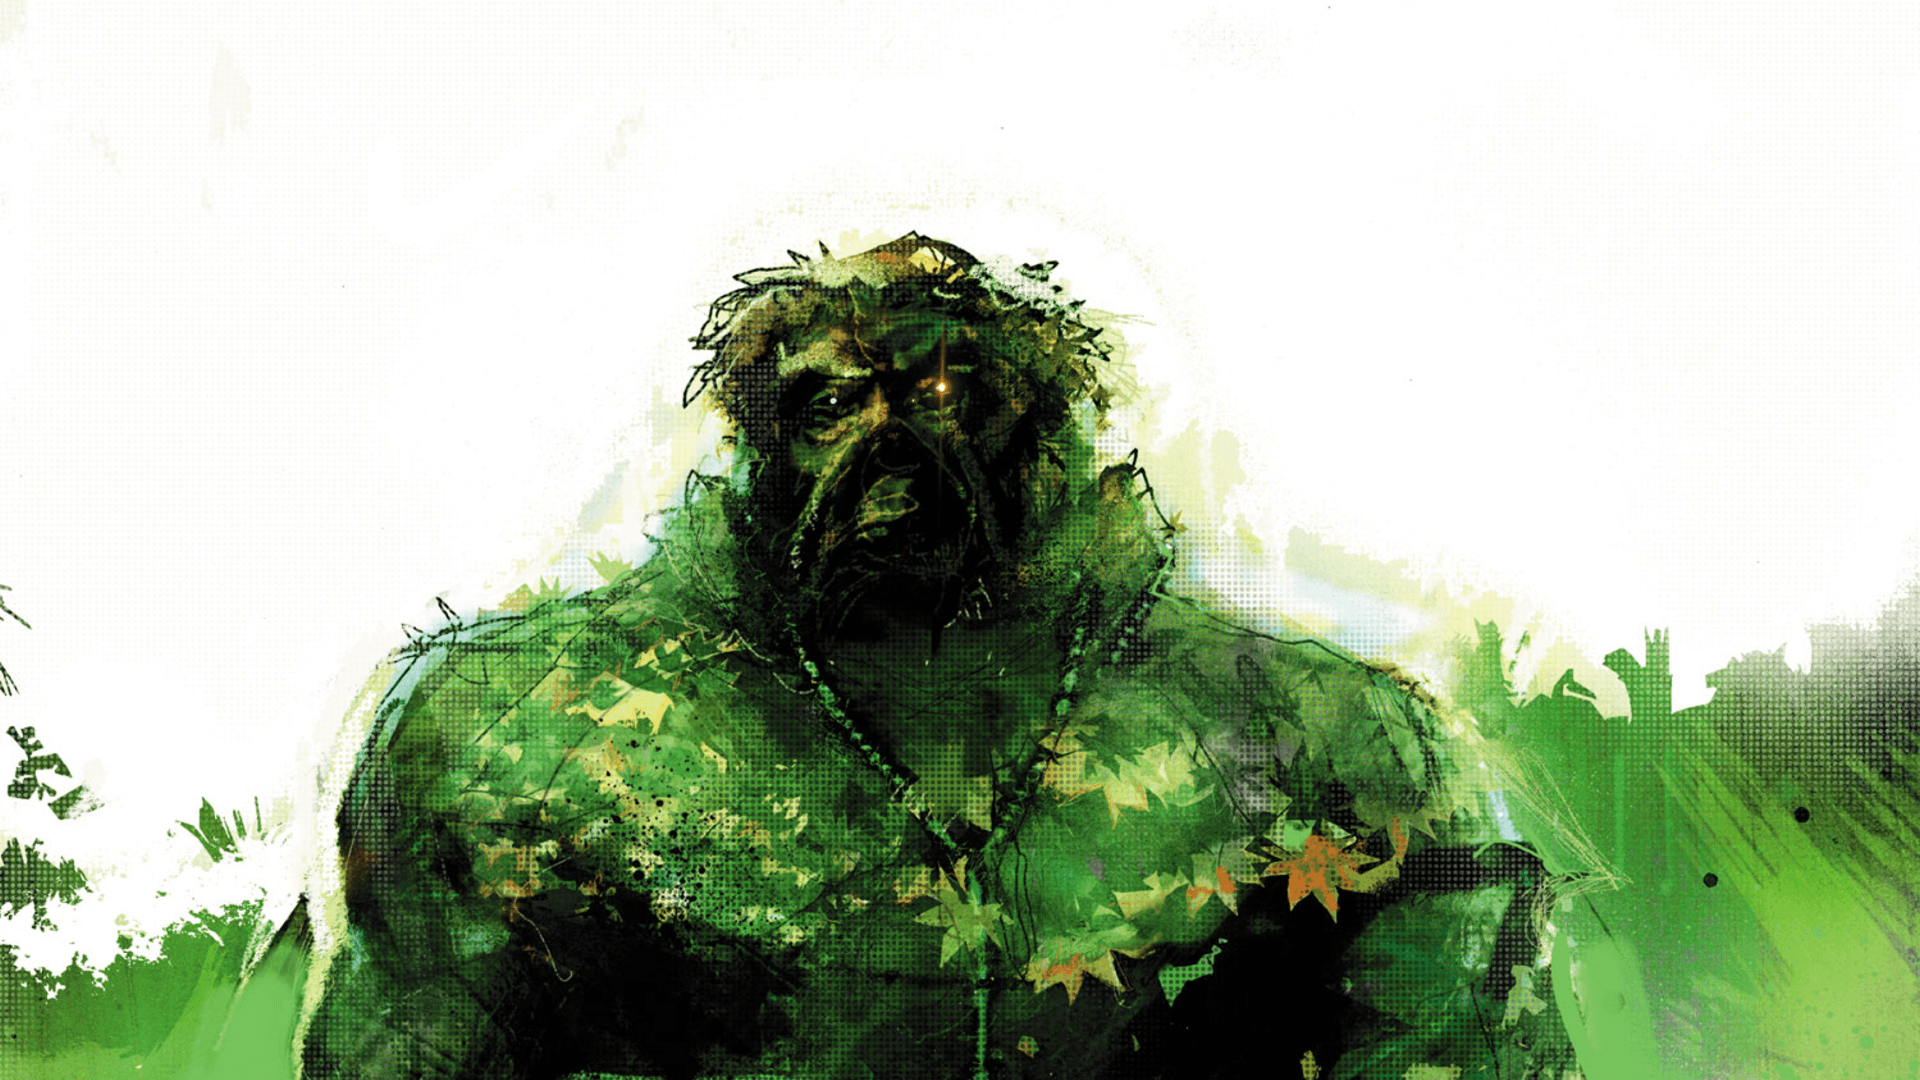 97 Swamp Thing HD Wallpapers | Backgrounds - Wallpaper Abyss